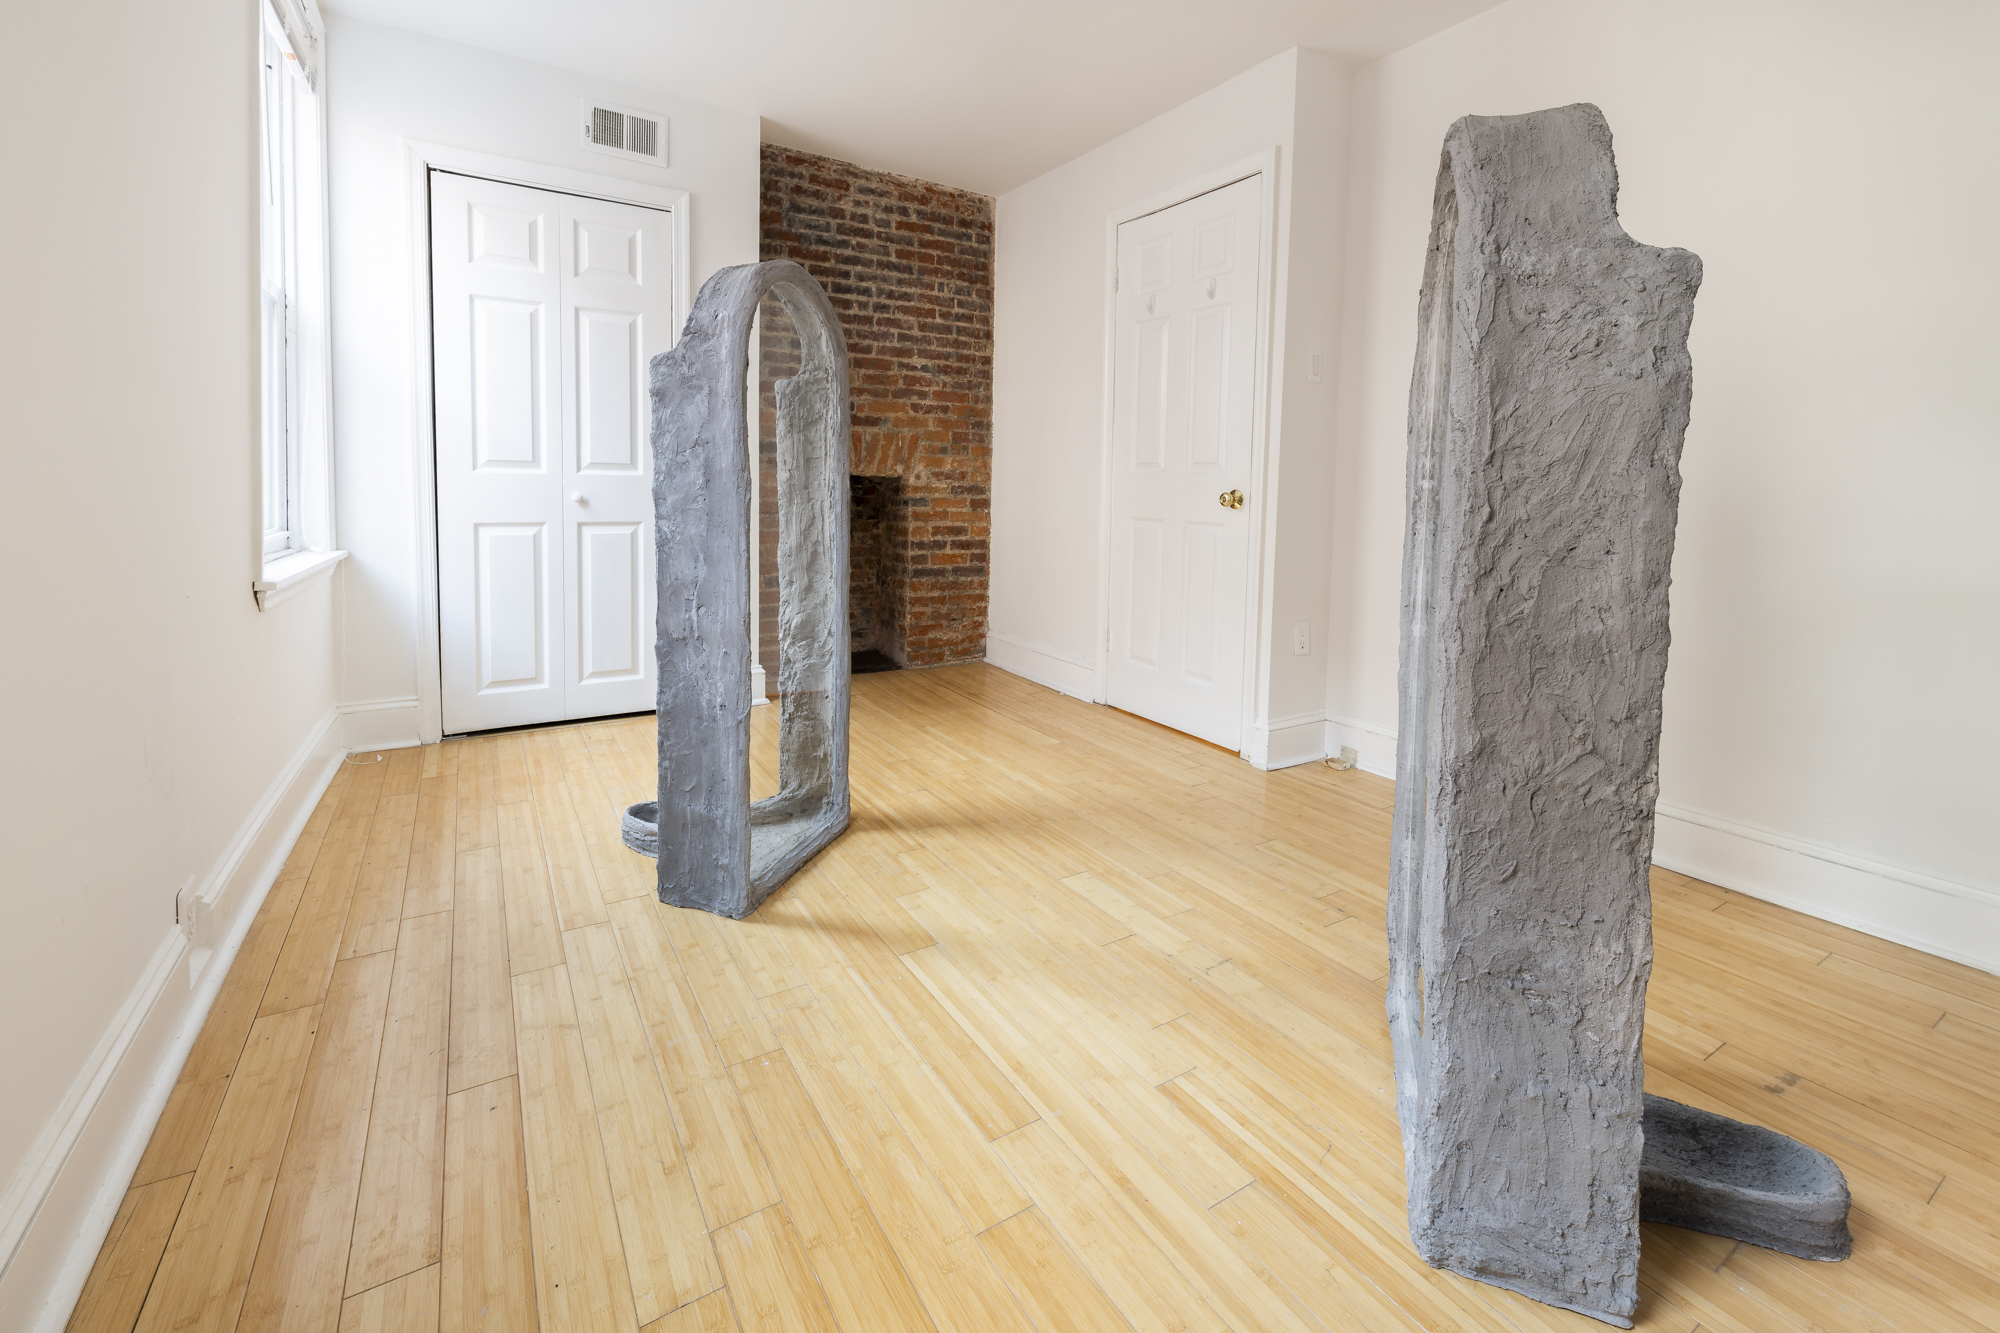 Oren Pinhassi,  Urinals NYC 1 and 2 , 2018, steel, glass, plaster, burlap, sand, pigment